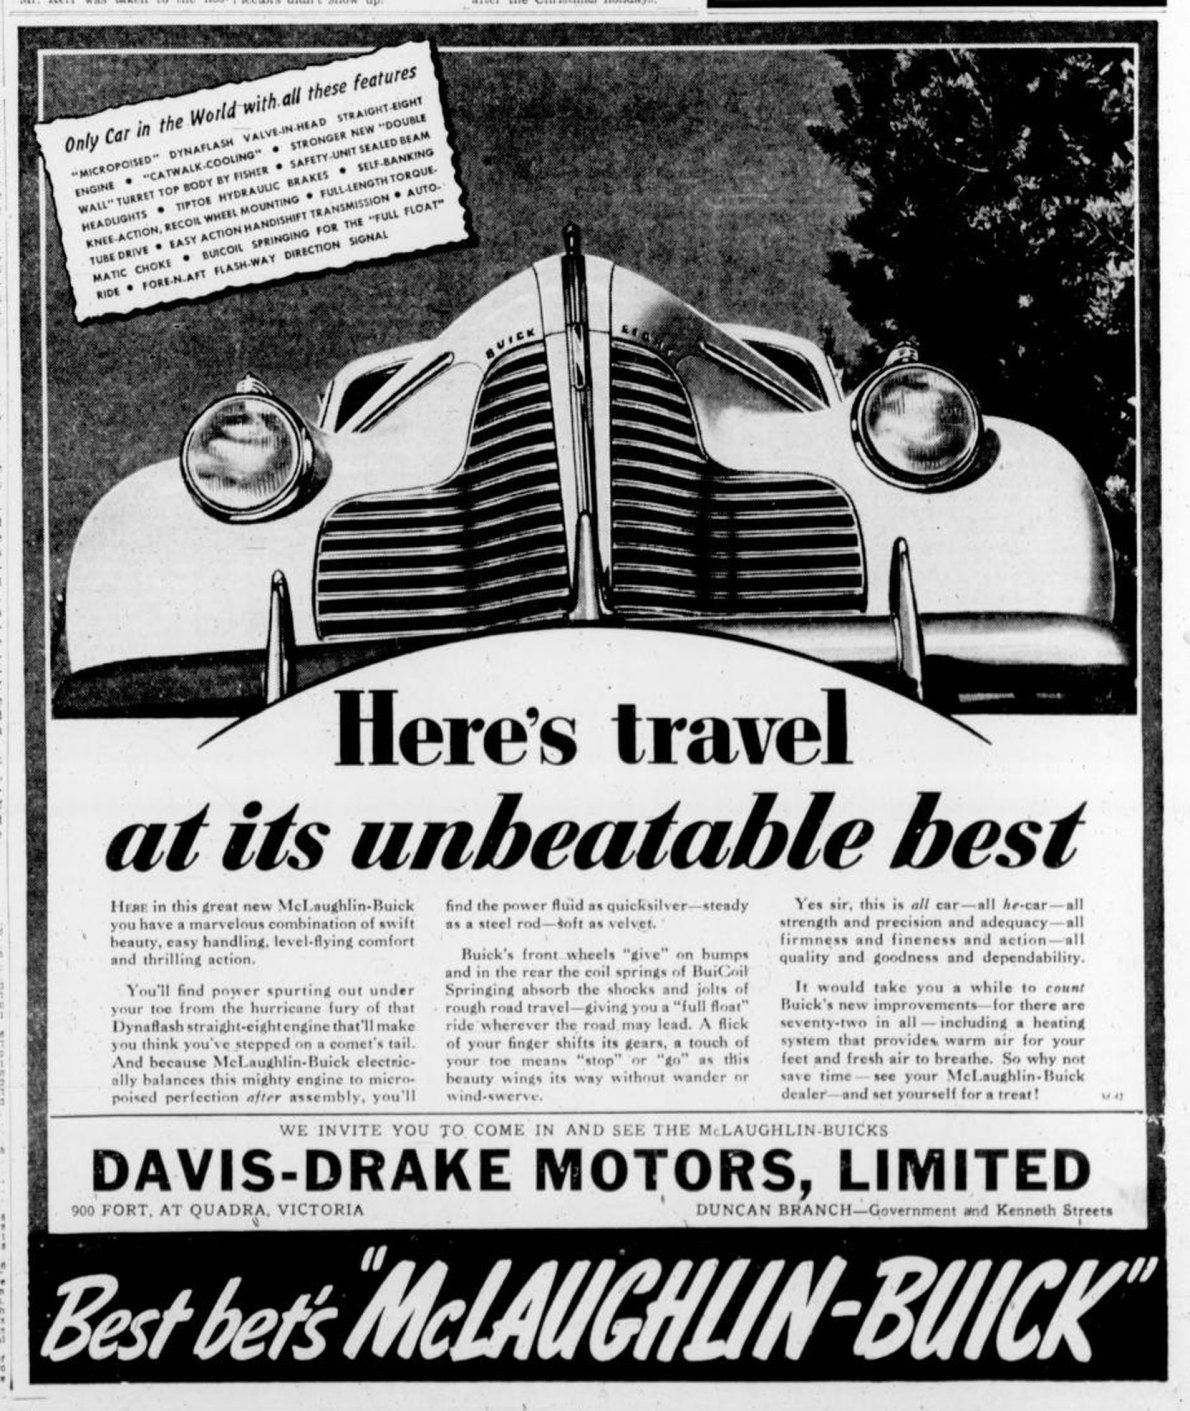 1939 advertisement for Buick placed by Davis-Drake Motors, 900 Fort Street. The building at 900 Fort Street is no longer standing. (Victoria Online Sightseeing Tours collection)